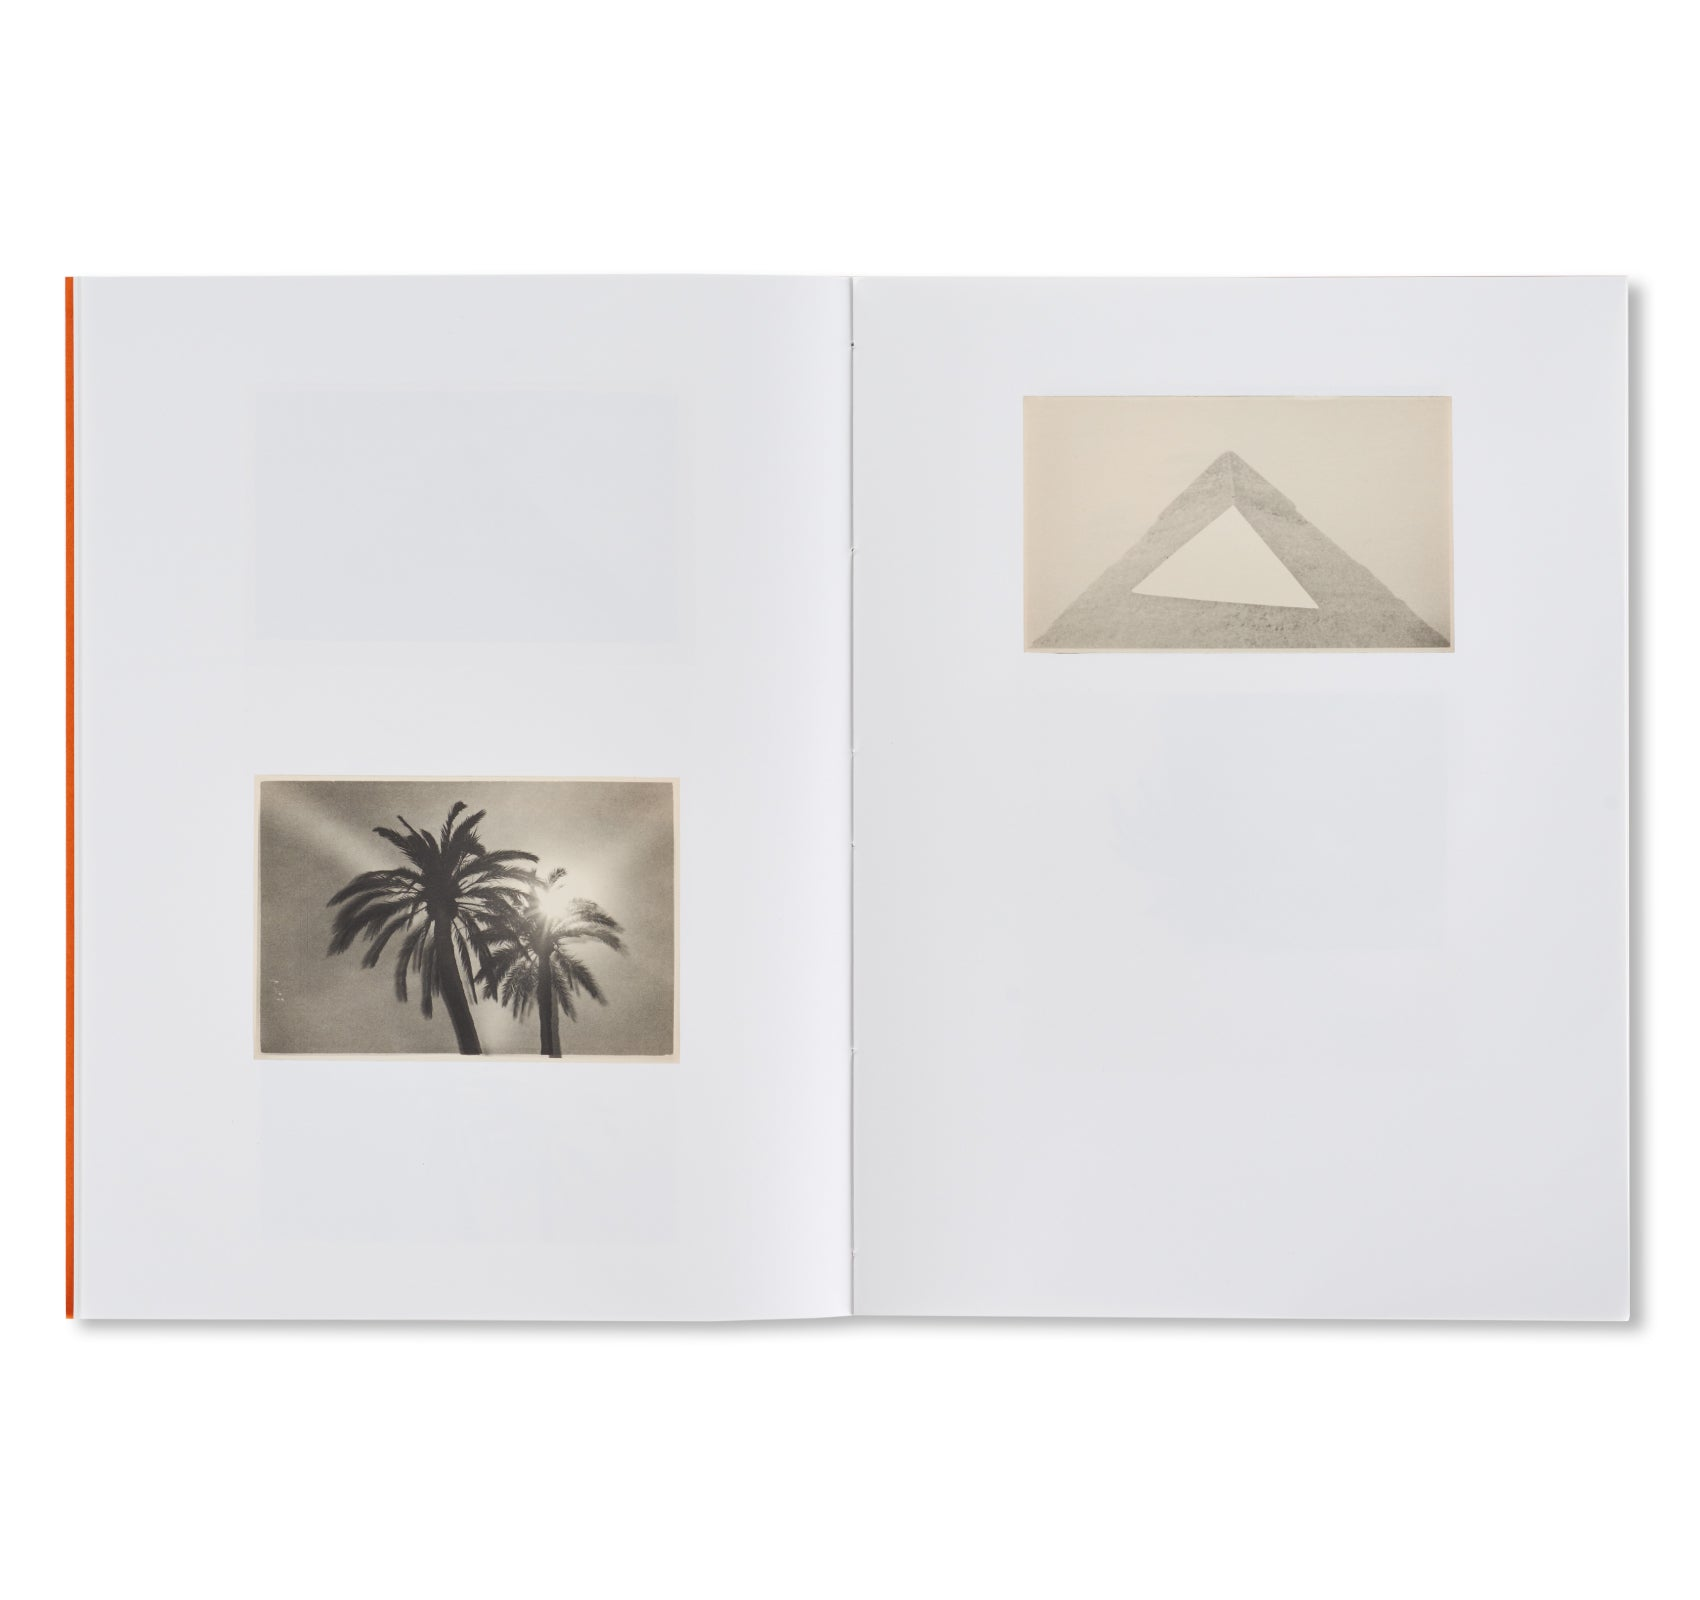 THE PYRAMIDS AND PALM TREES TEST by Bruno V. Roels